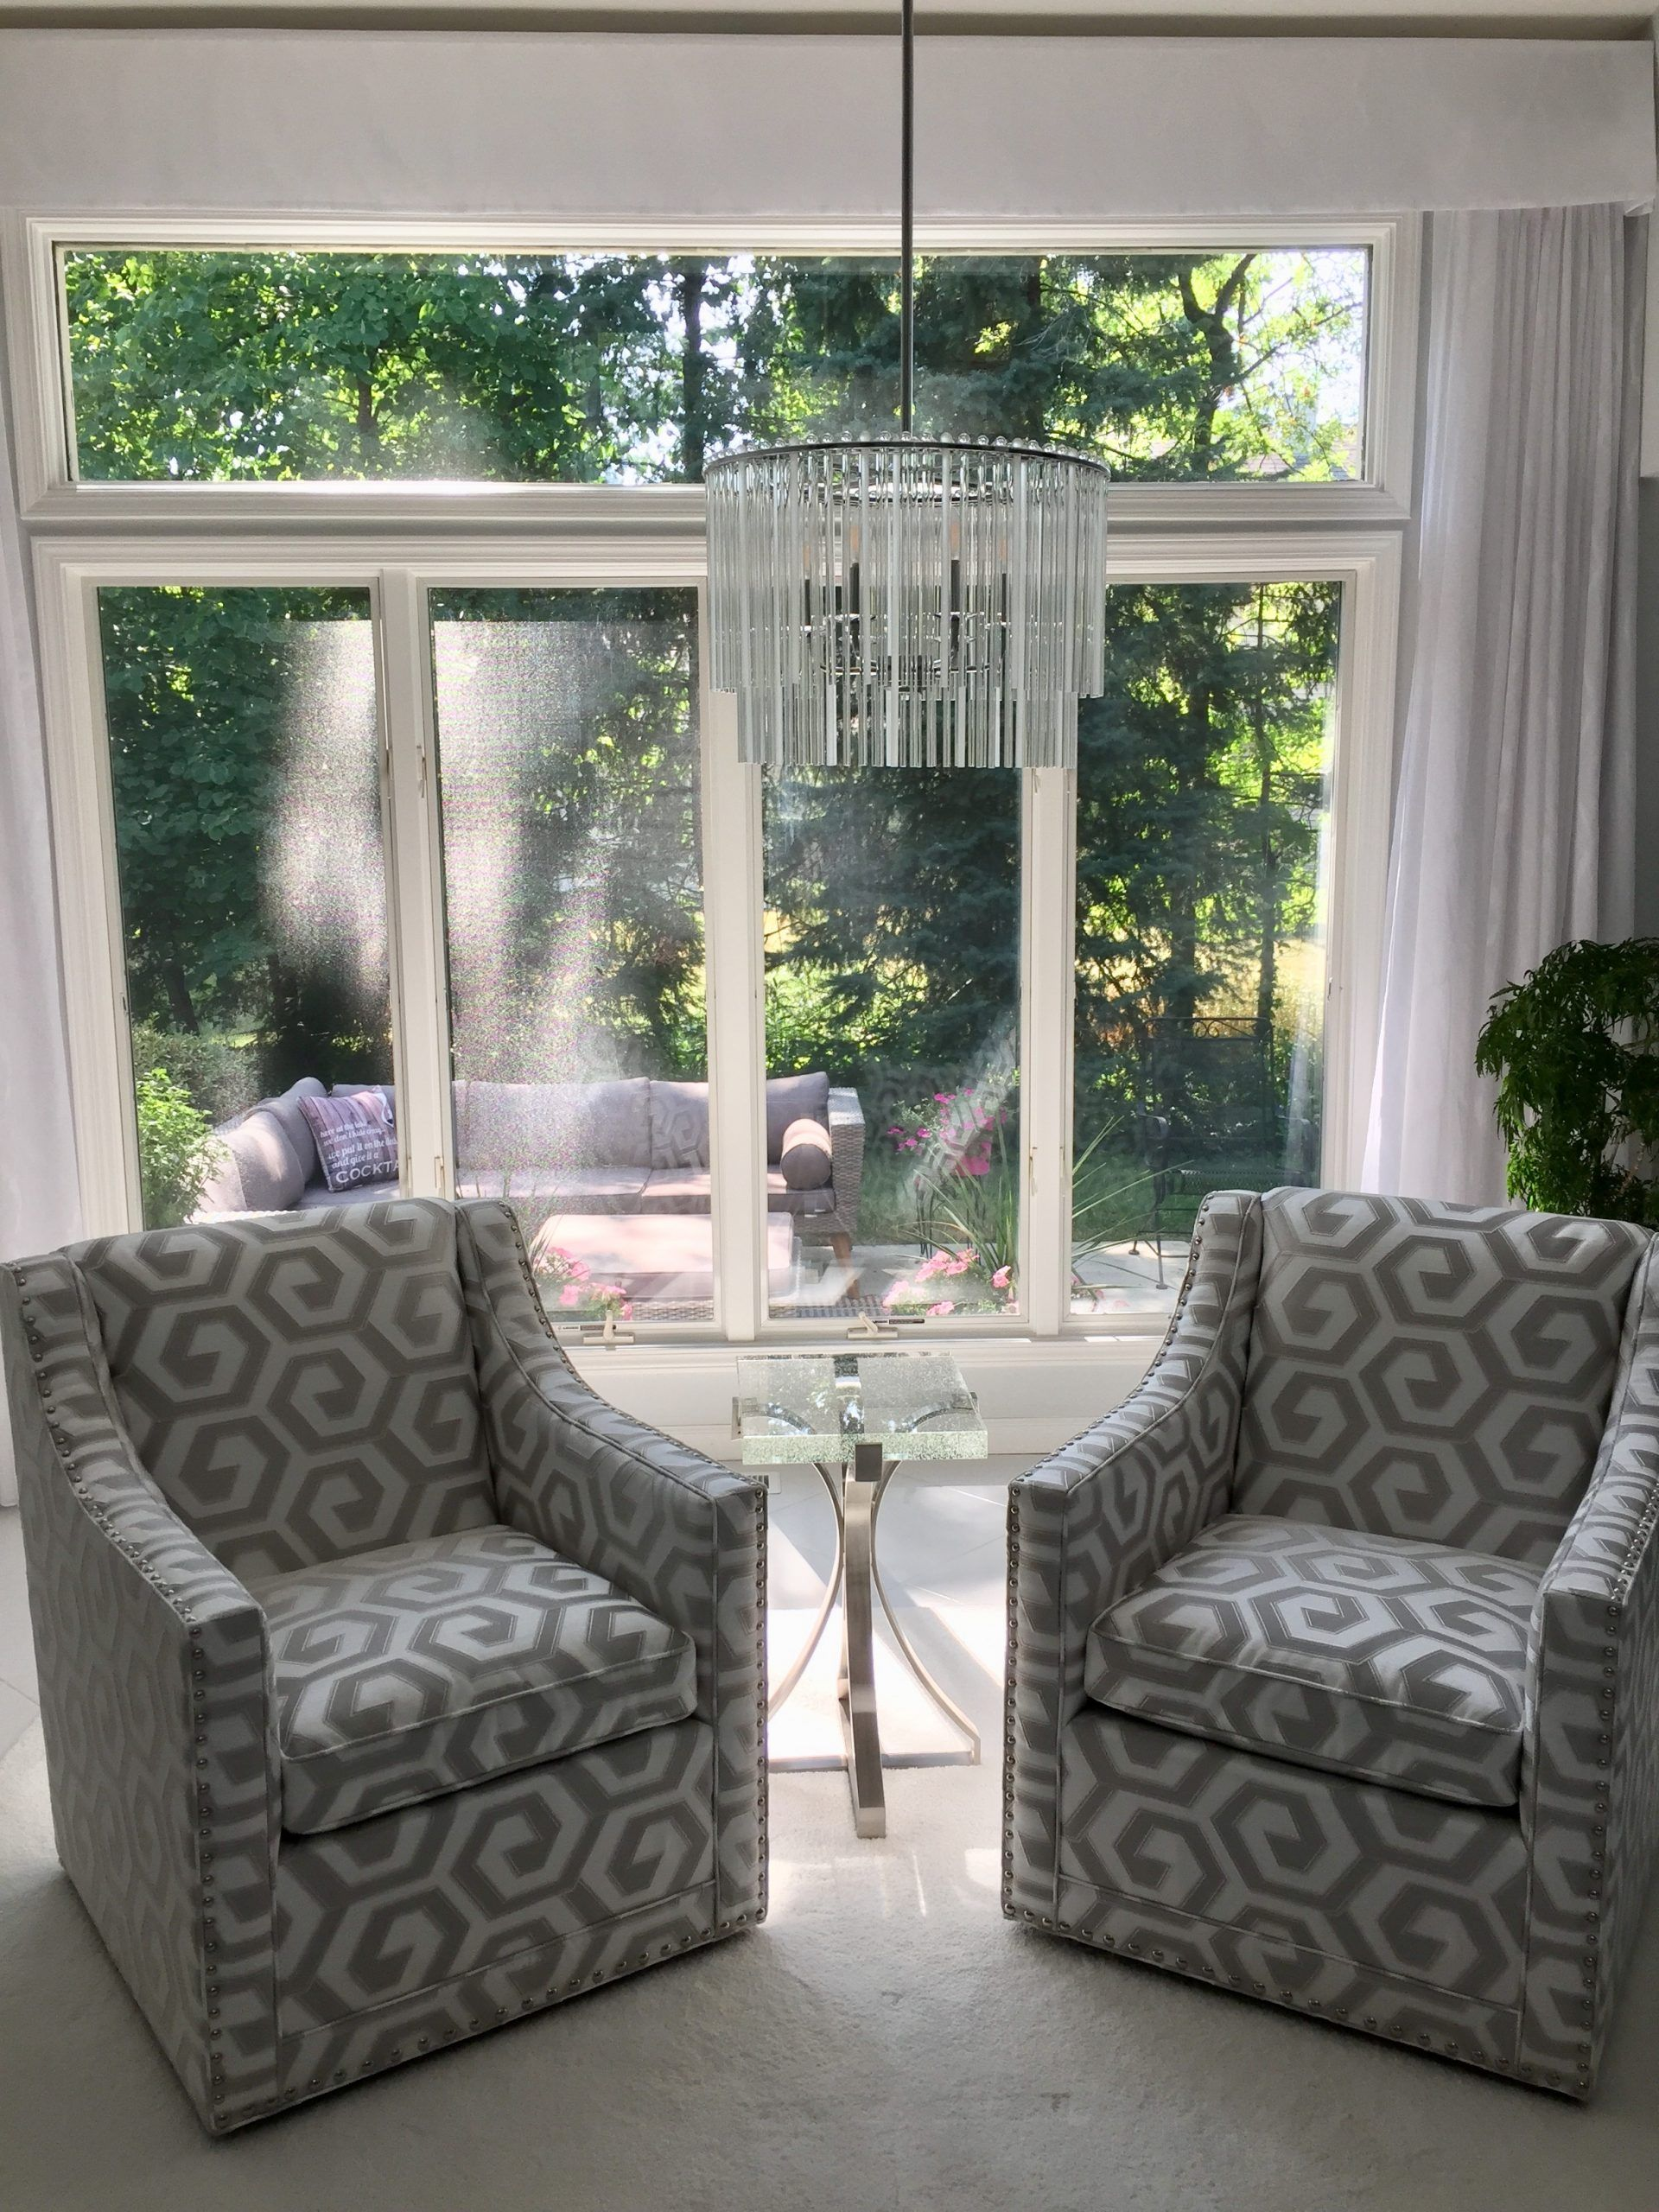 two chairs window